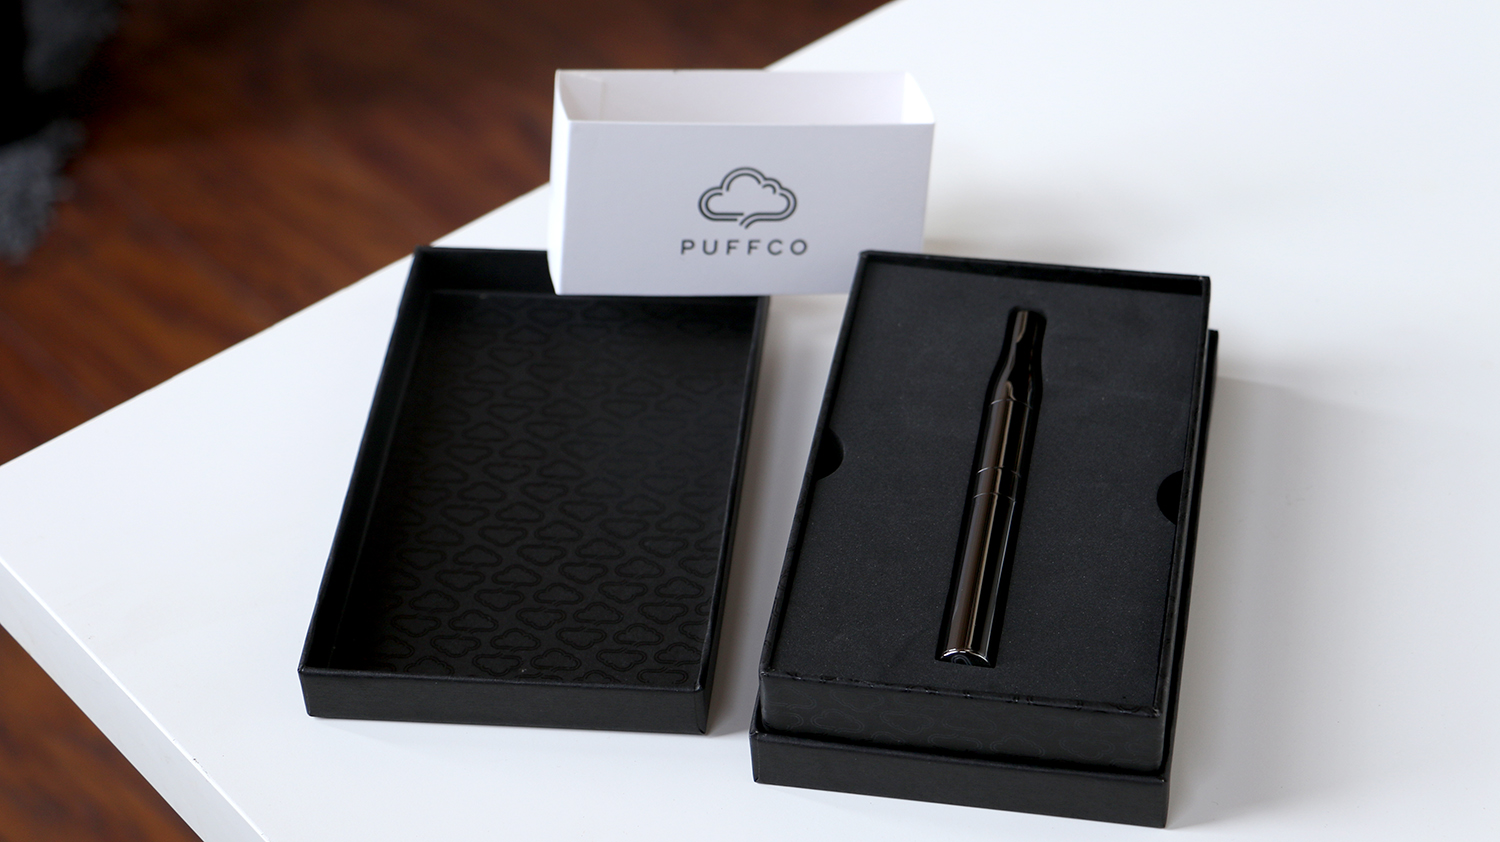 Puffco Plus packaging reviewed by Vape Pen Pro